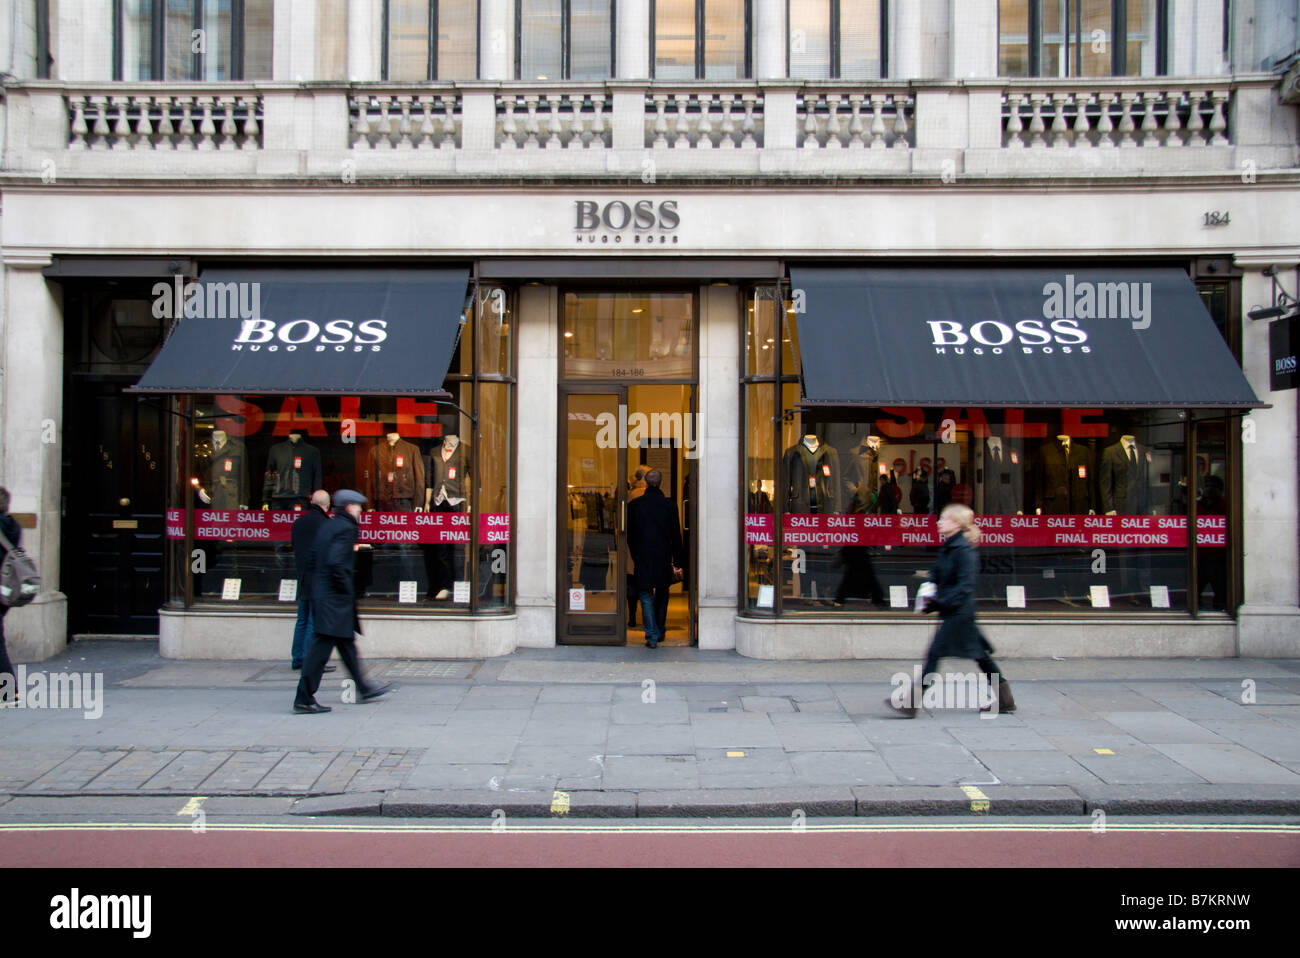 best hugo boss shop london teduh hostel. Black Bedroom Furniture Sets. Home Design Ideas